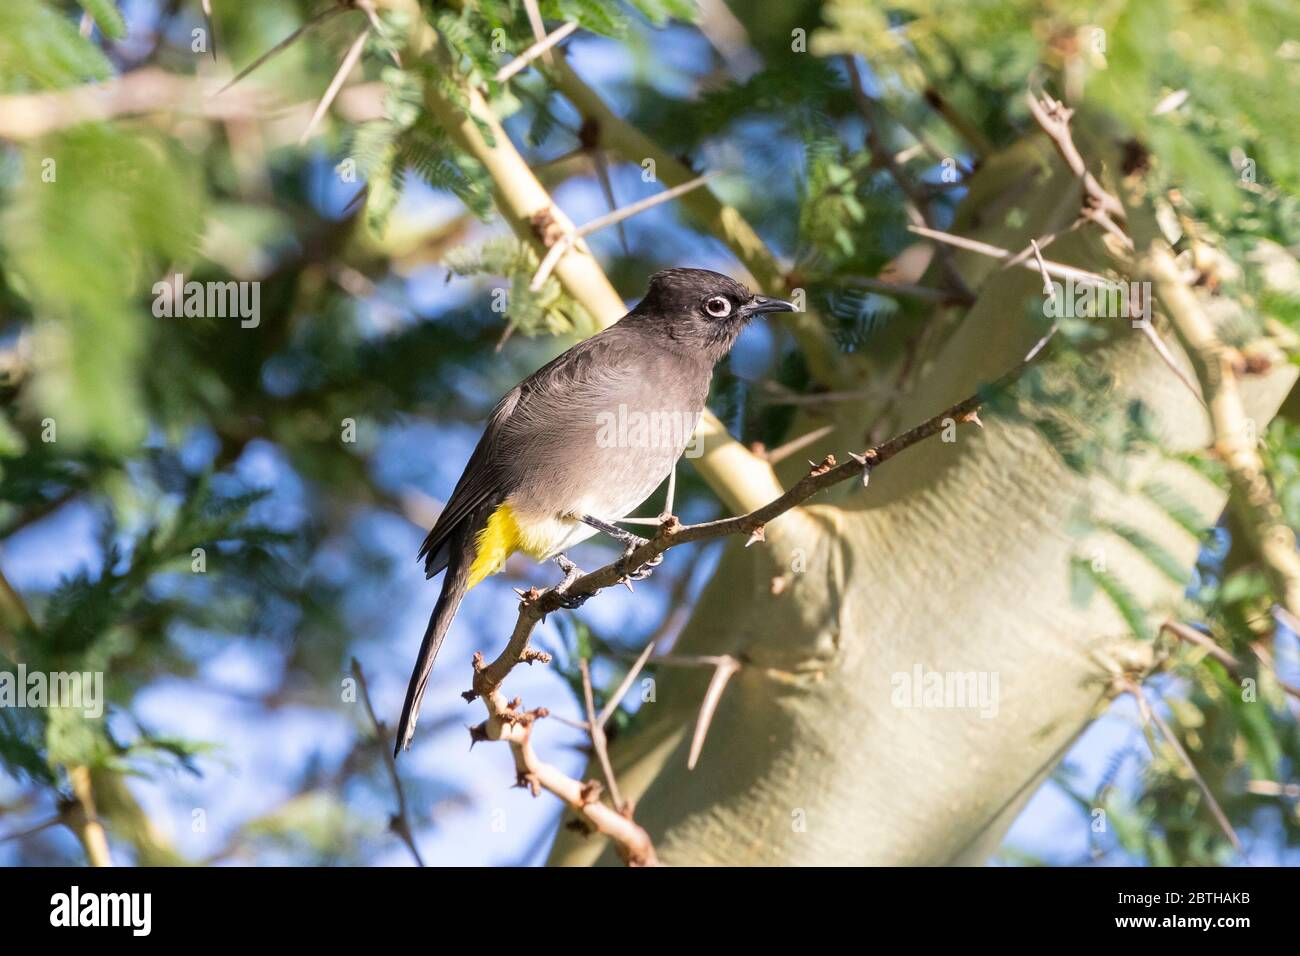 Cape Bulbul (Pycnonotus capensis) perched in  a Fever Tree (Vachellia xanthophloea),  Western Cape, South Africa Stock Photo